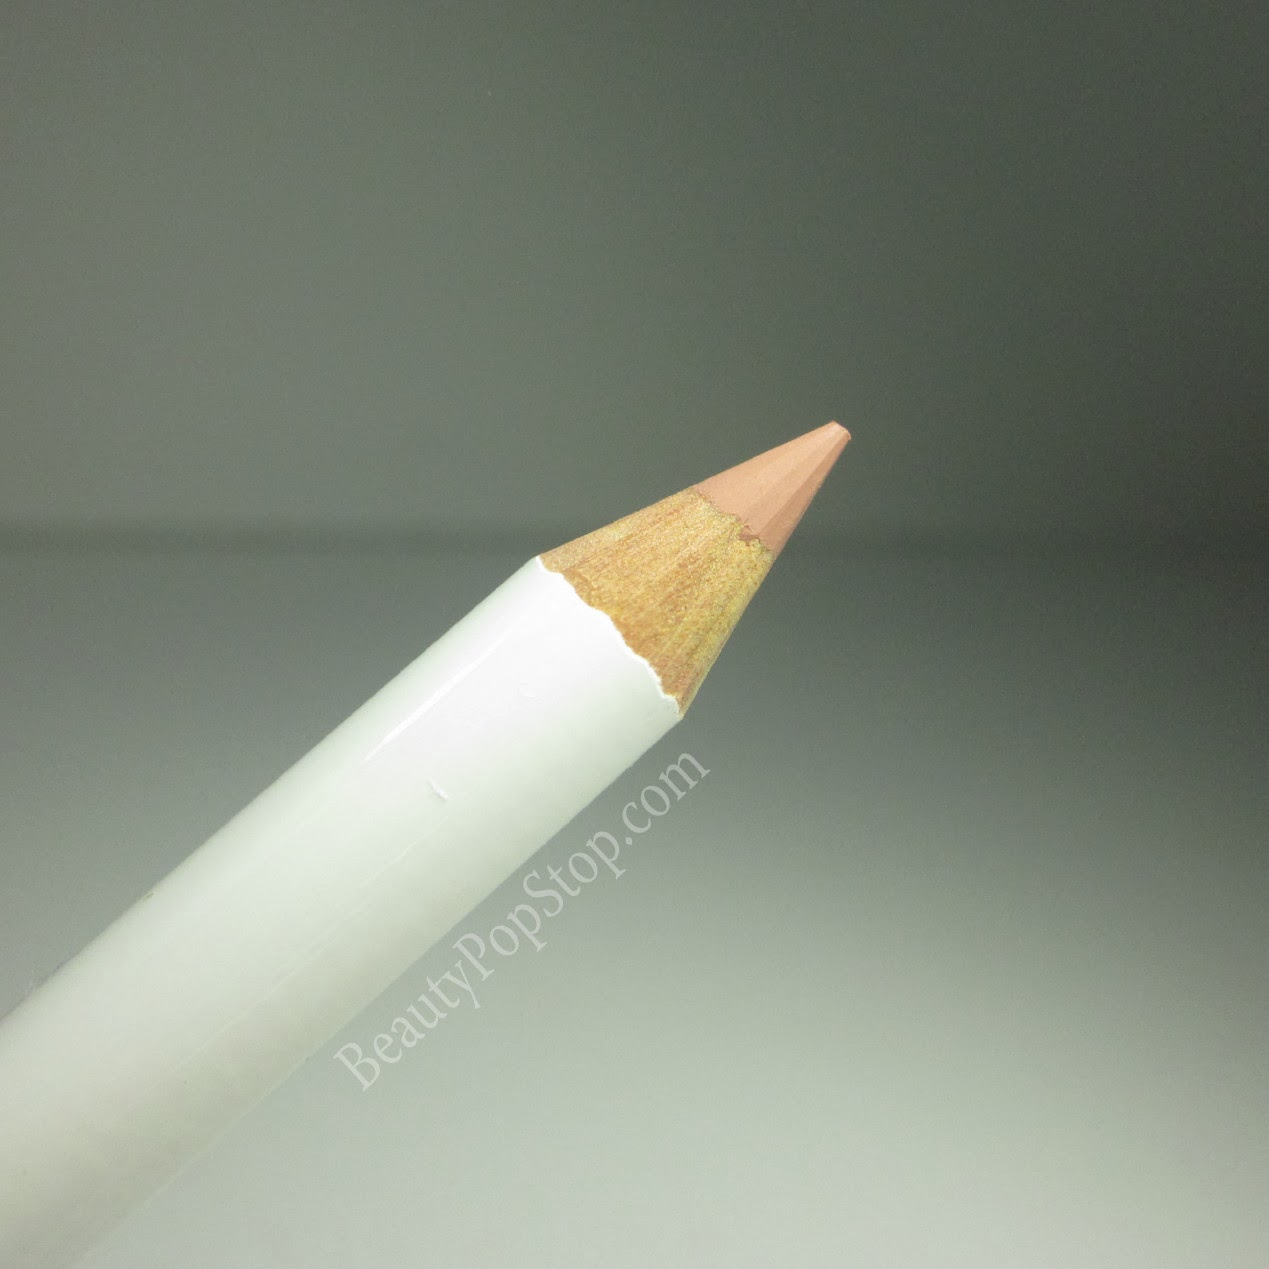 obsessive compulsive cosmetics cosmetic Colour pencil Trick review